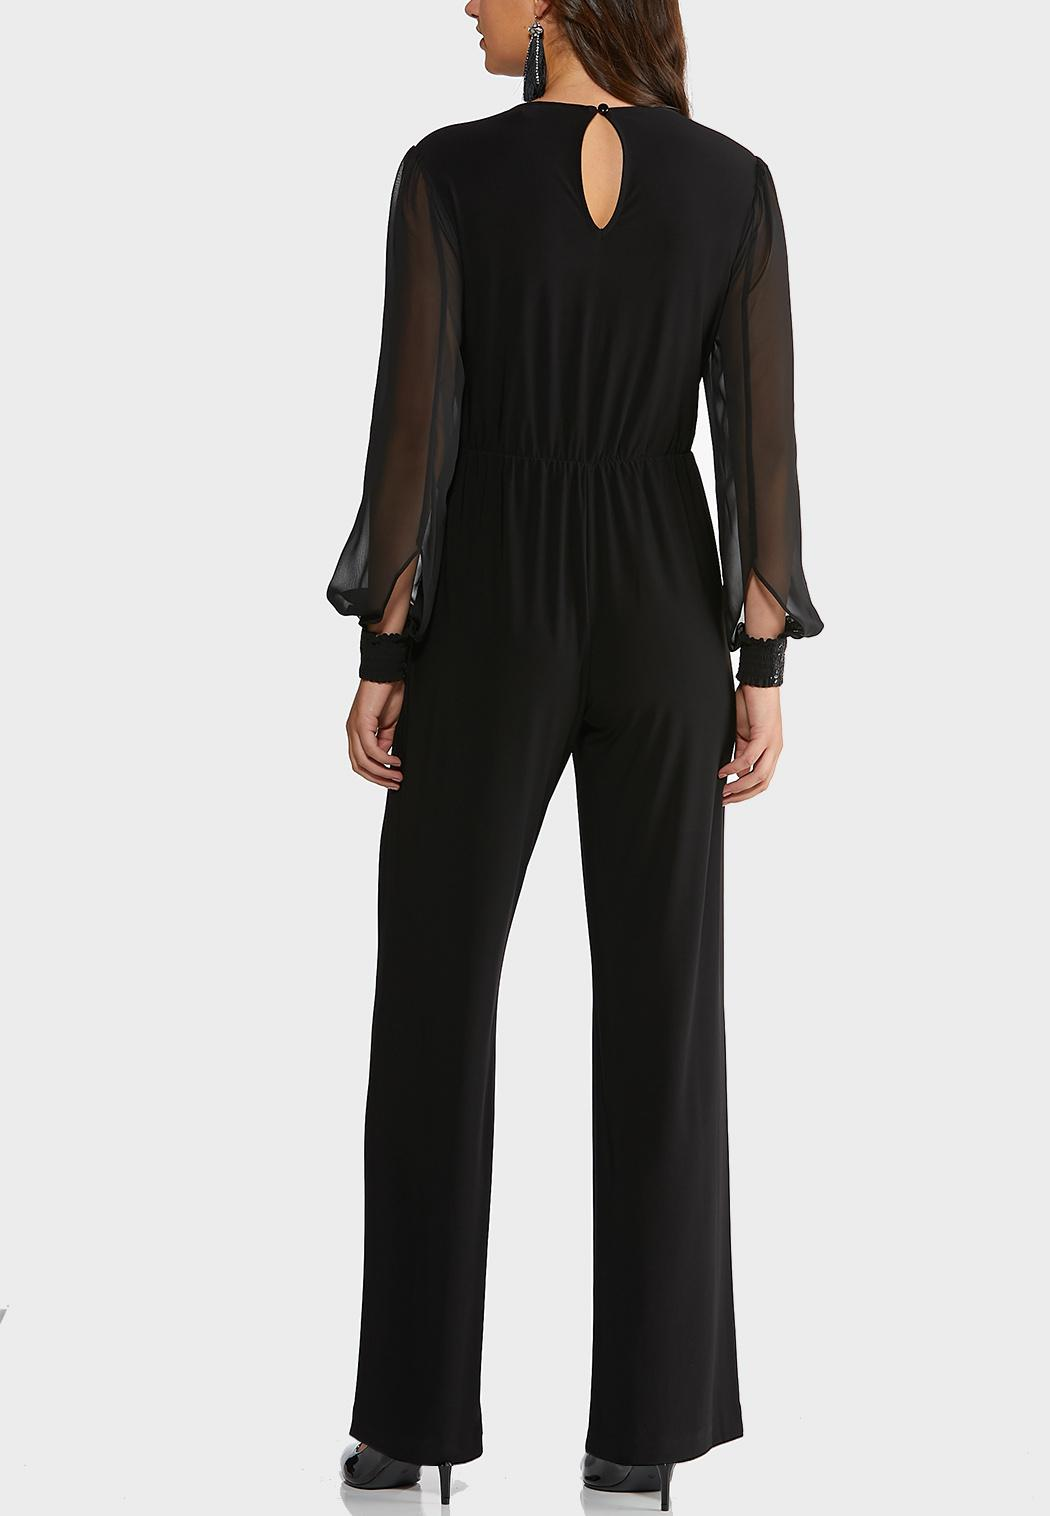 Petite Dressy Sheer Sleeve Jumpsuit (Item #44402286)